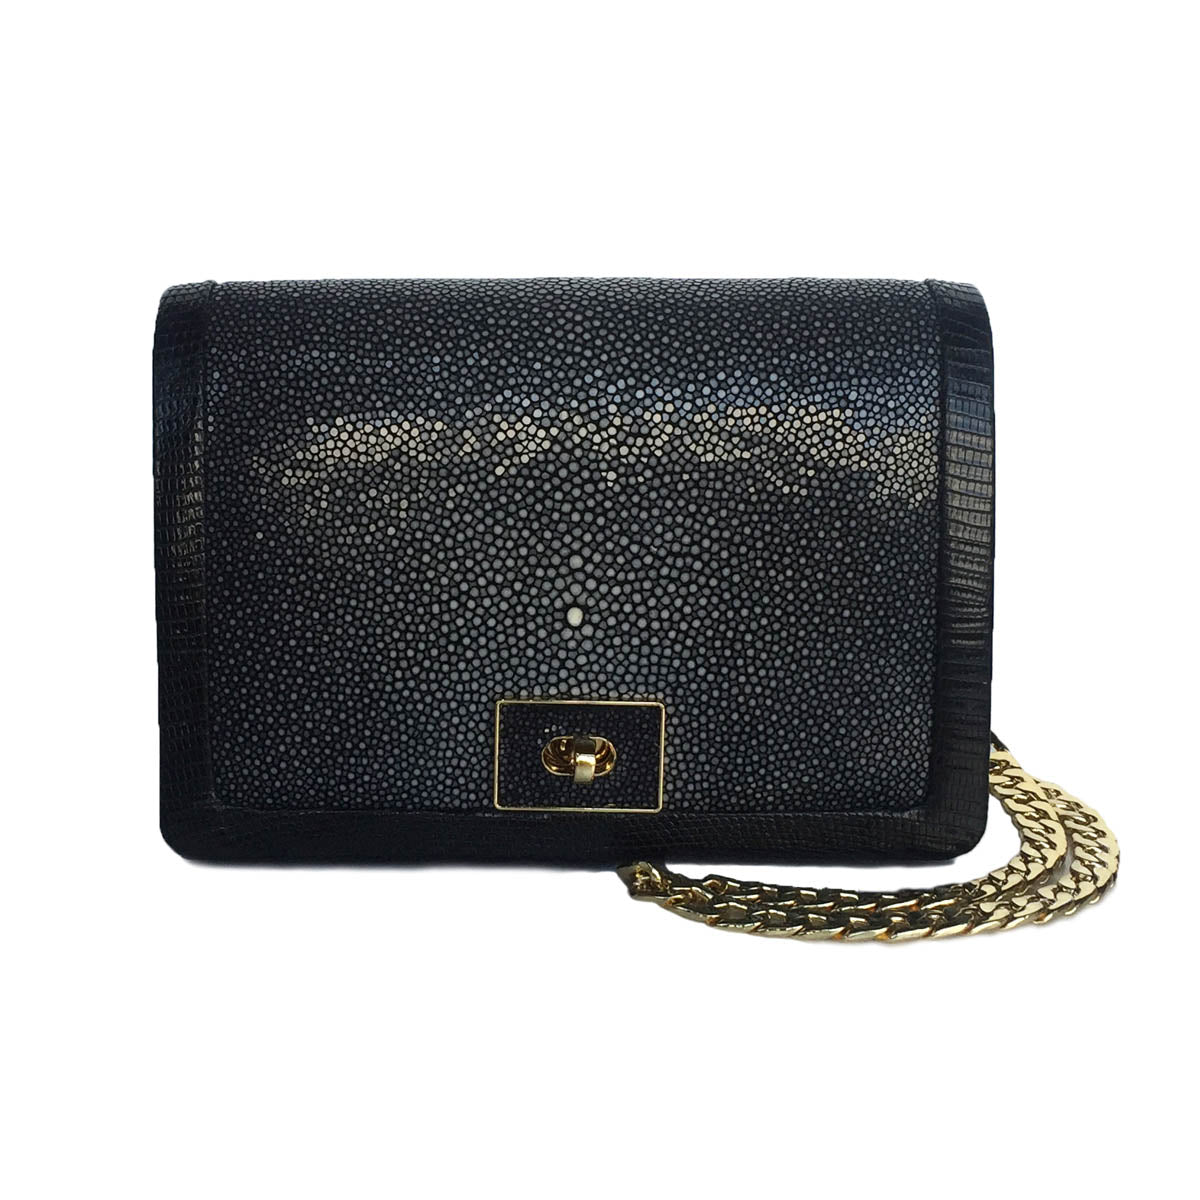 068a3a5e4f7b9 OLA Black Stingray and Lizard Cross Body Clutch Bag by LAYKH